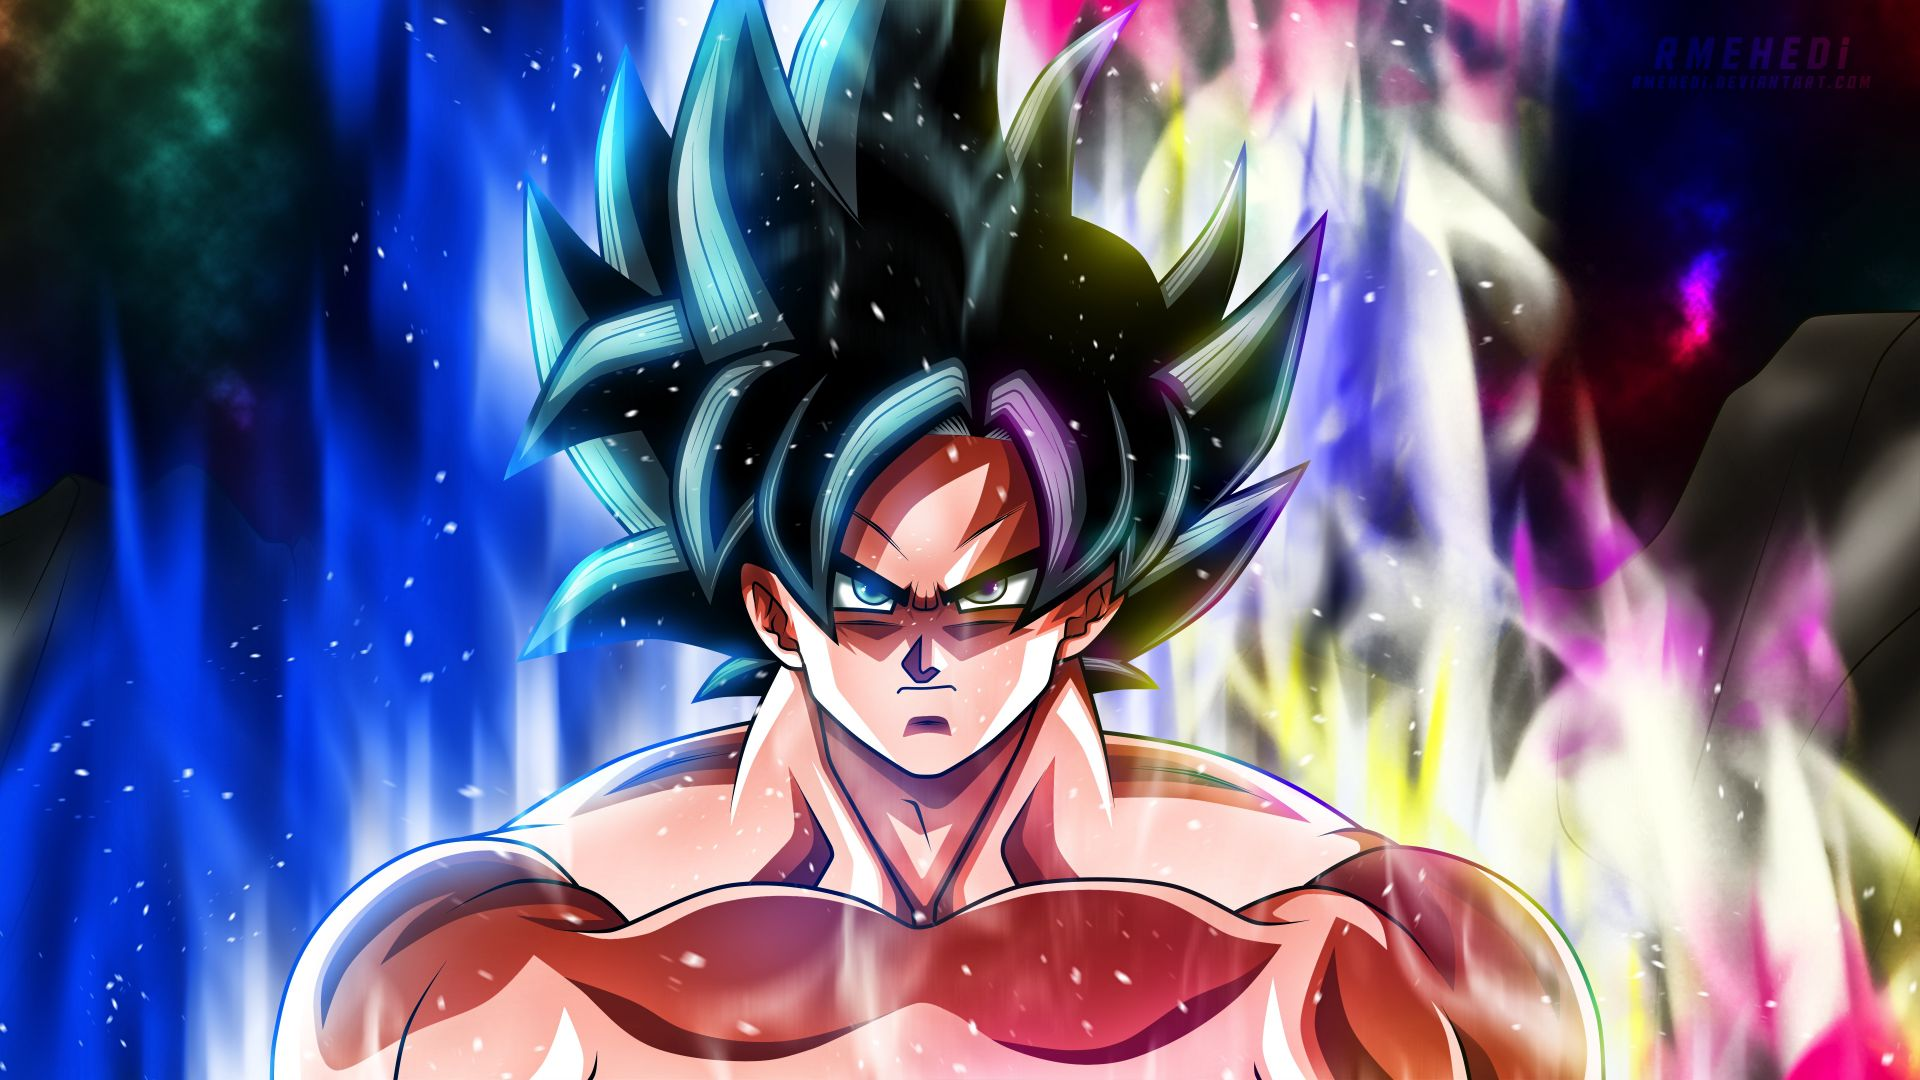 Desktop Wallpaper Angry Goku Anime Dragon Ball Super Hd Image Picture Background 05197a